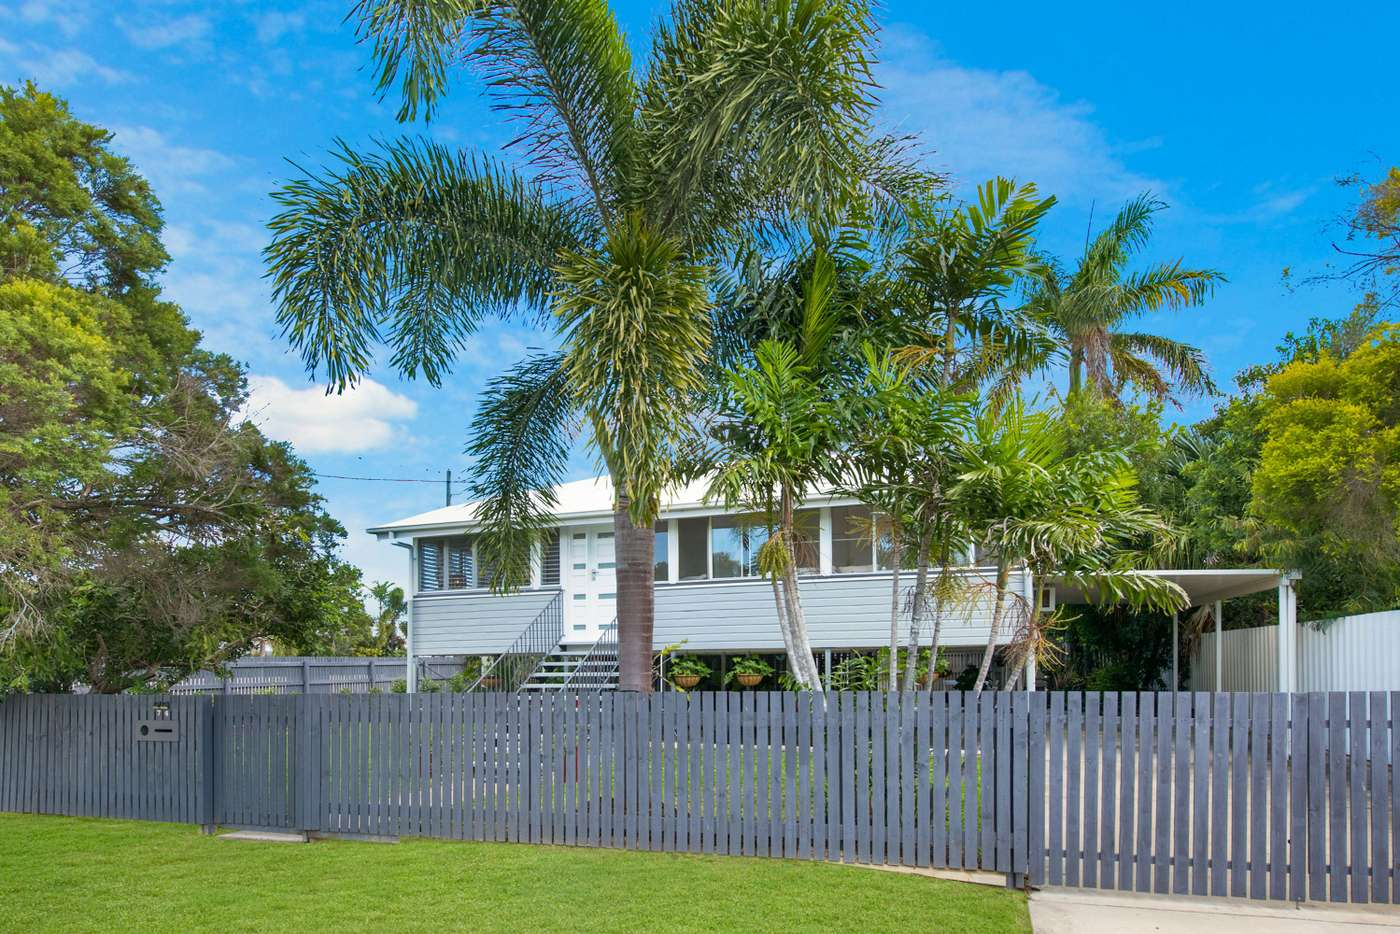 Main view of Homely house listing, 74 Todd Street, Railway Estate QLD 4810